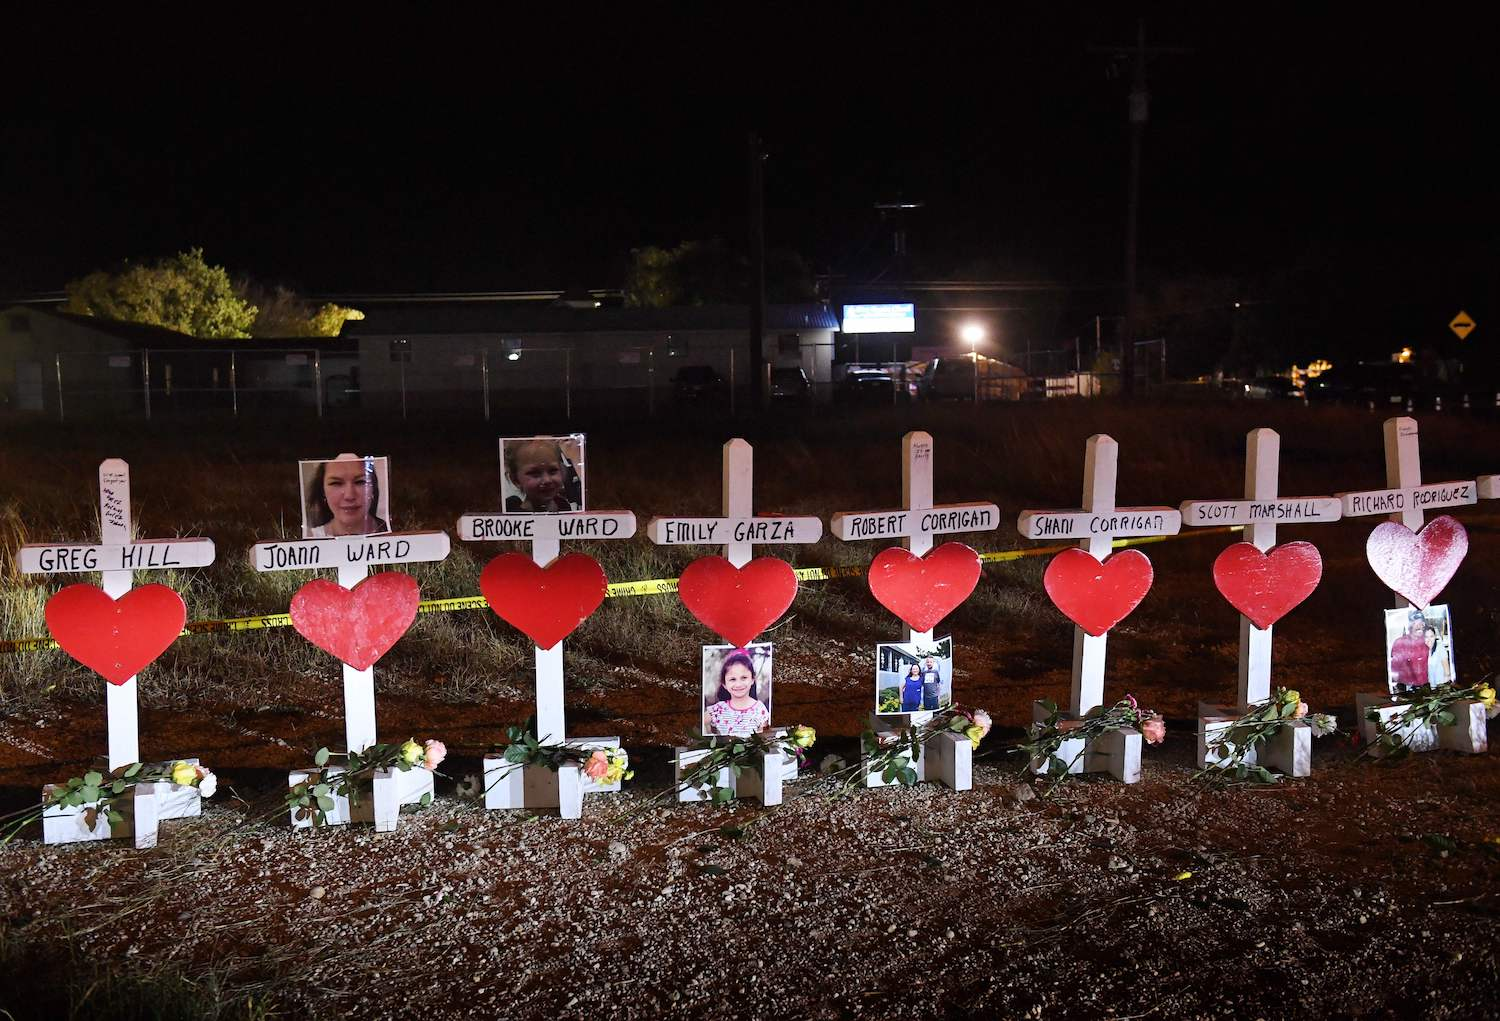 Crosses with the names of victims are seen outside the First Baptist Church which was the scene of the mass shooting that killed 26 people in Sutherland Springs, Texas on Nov. 8. (Mark Ralston/AFP/Getty Images)